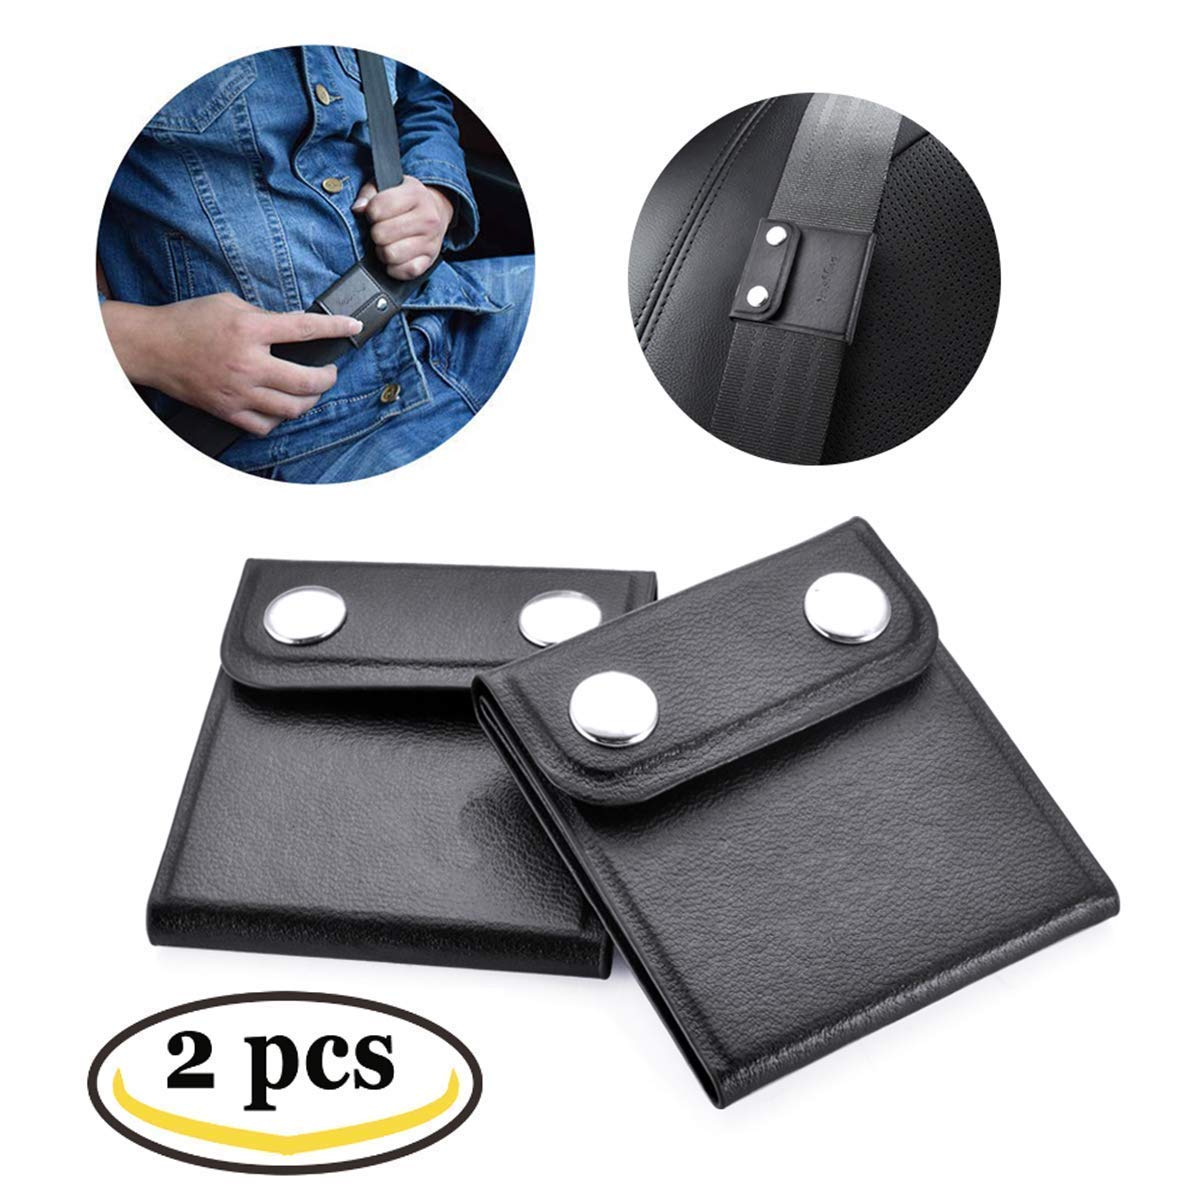 2 Pack, Black Seat Belt Adjuster Comfortable Auto Shoulder Neck Strap Positioner Locking Clips Covers with PU Leather for Kids and Adults